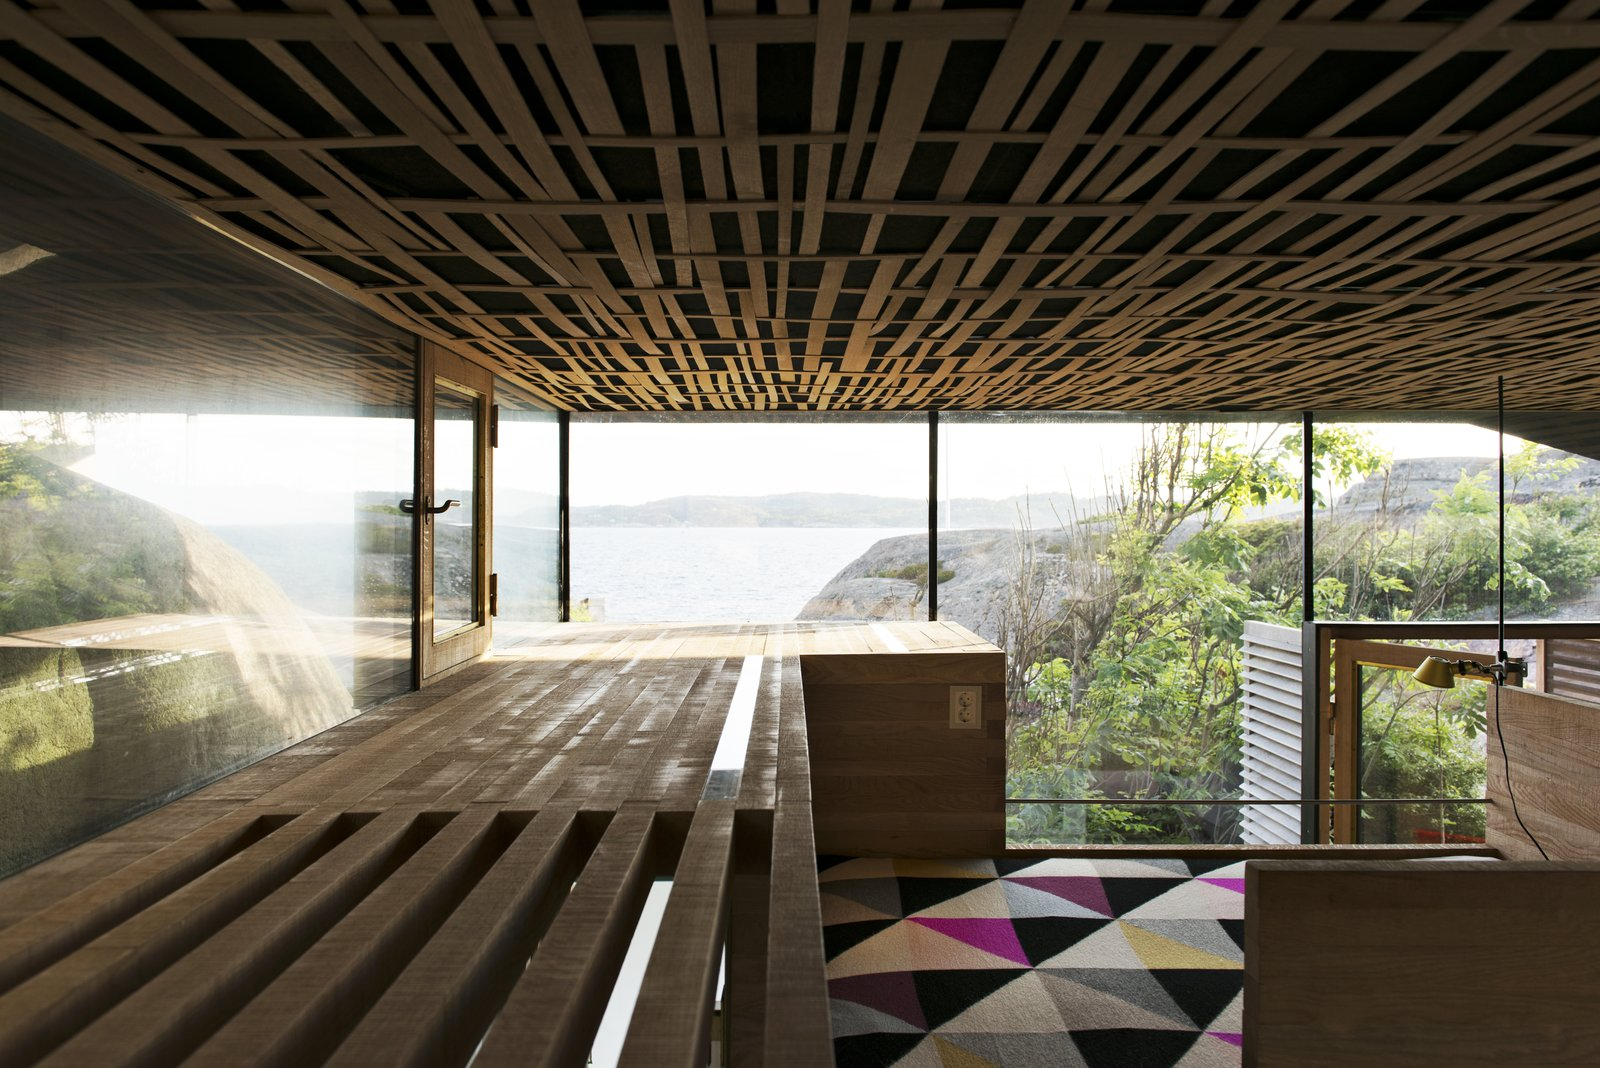 The interior walls are solid 50/50mm oak layered with a natural sawn texture, while the acoustic ceiling is covered with woven oak strips.